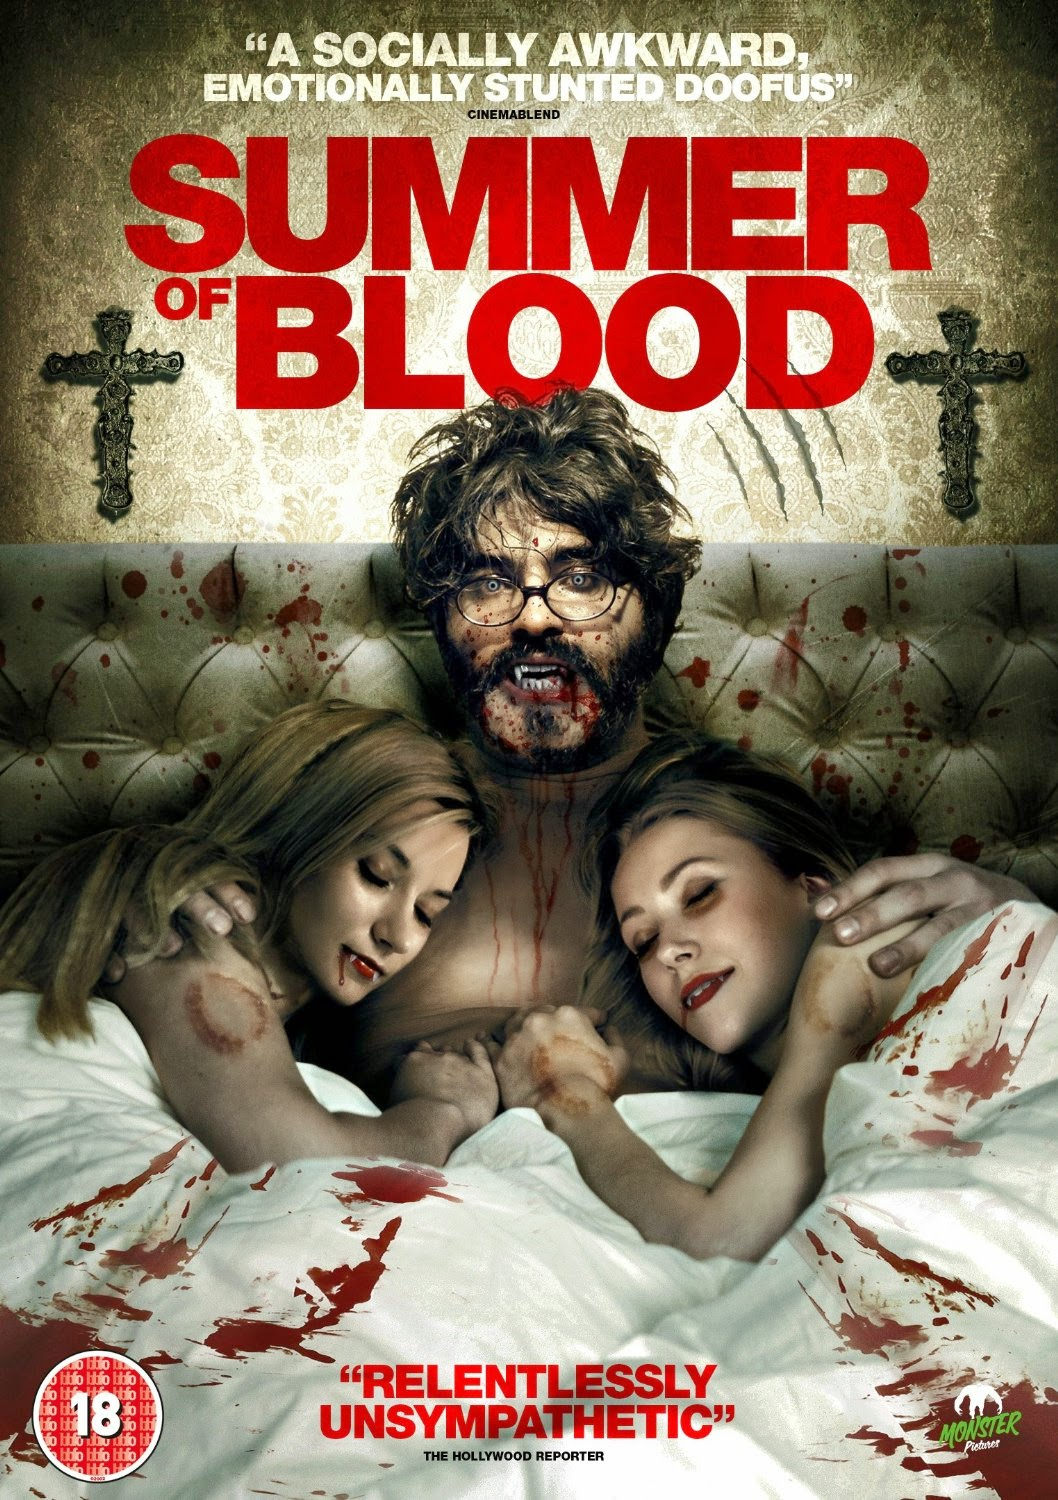 Download Summer of Blood (2014) BluRay 720p 700MB+All Subtitle